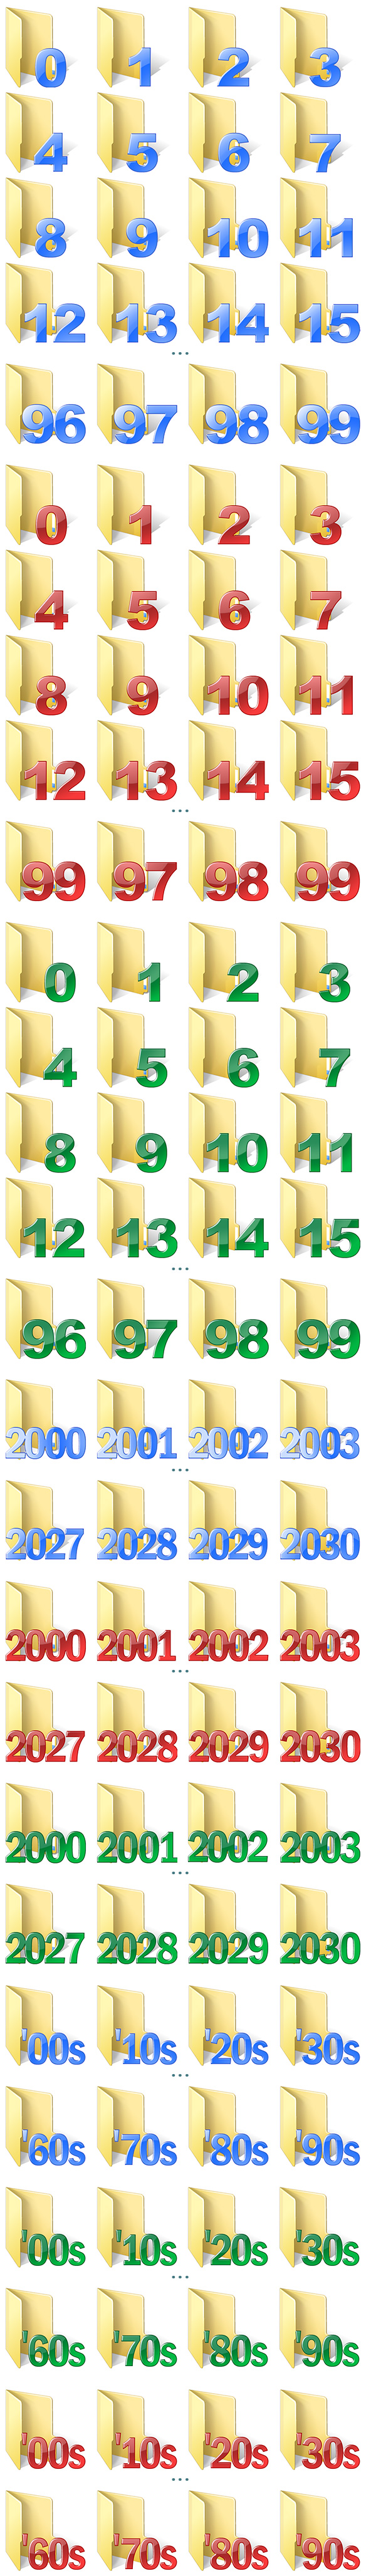 Numbered Folder Icons